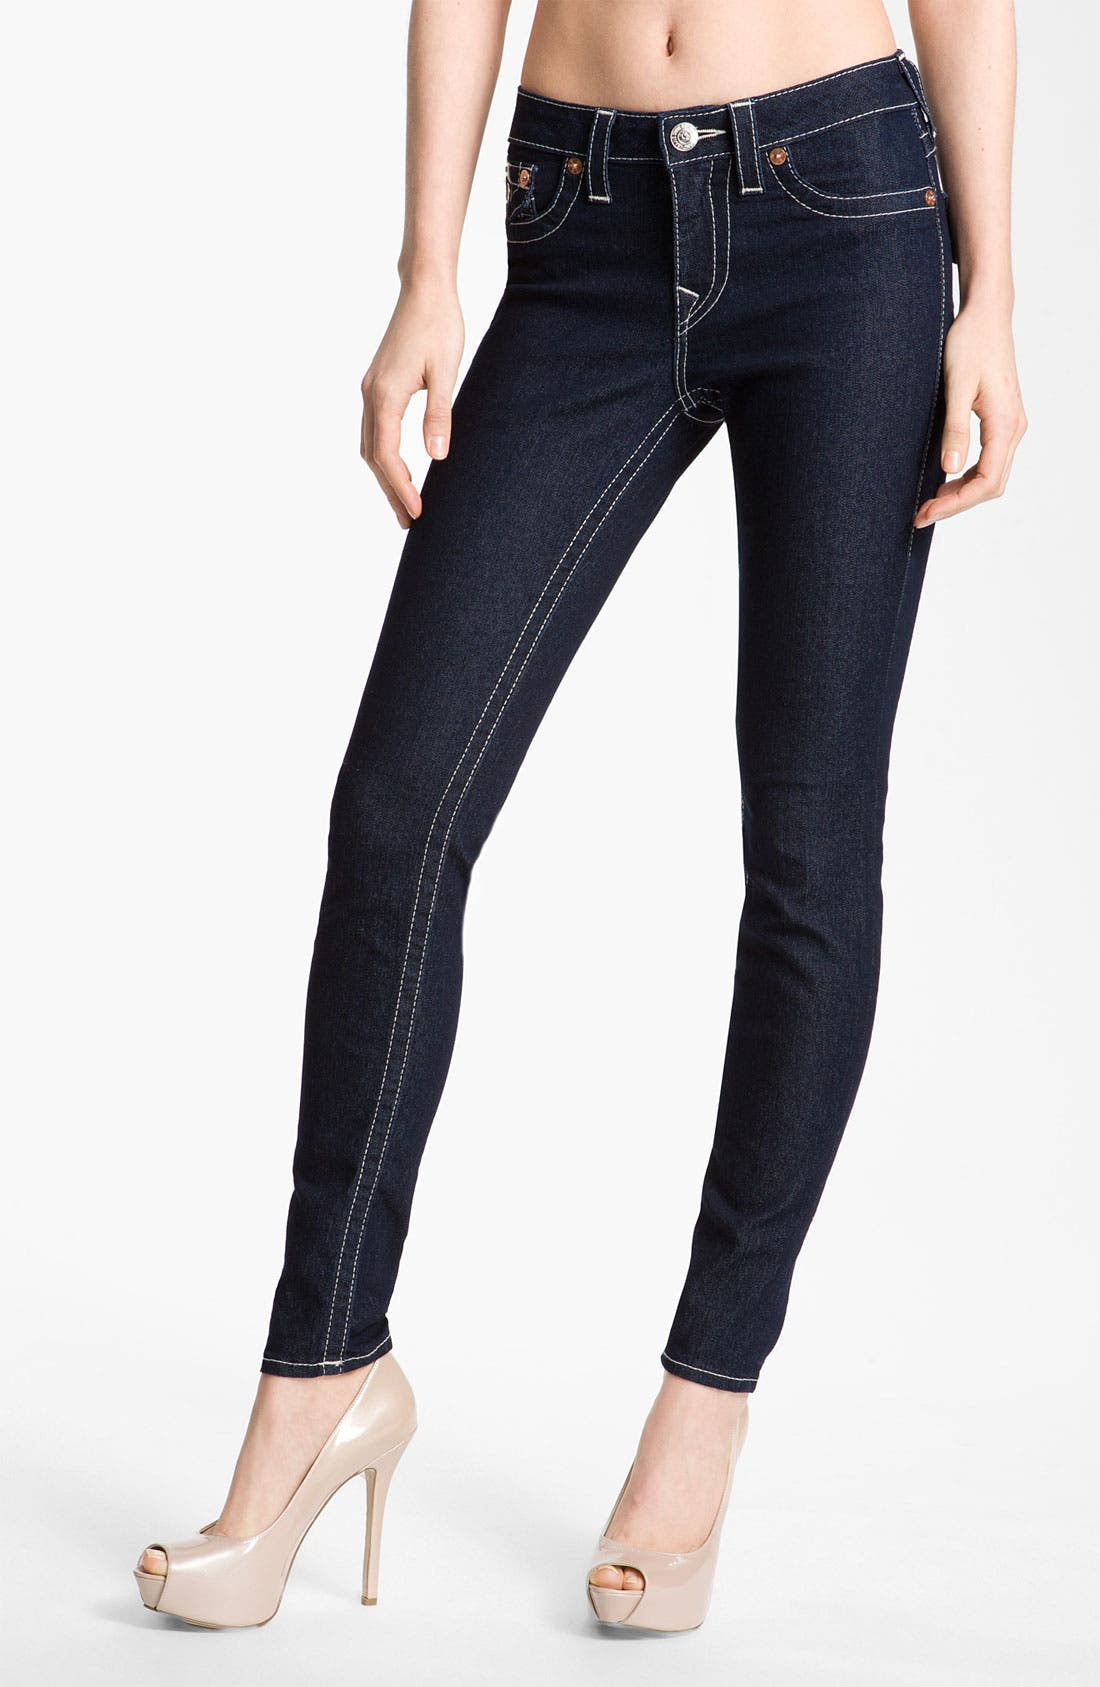 Main Image - True Religion Brand Jeans 'Serena' Skinny Leg Jeans (Body Rinse) (Online Exclusive)